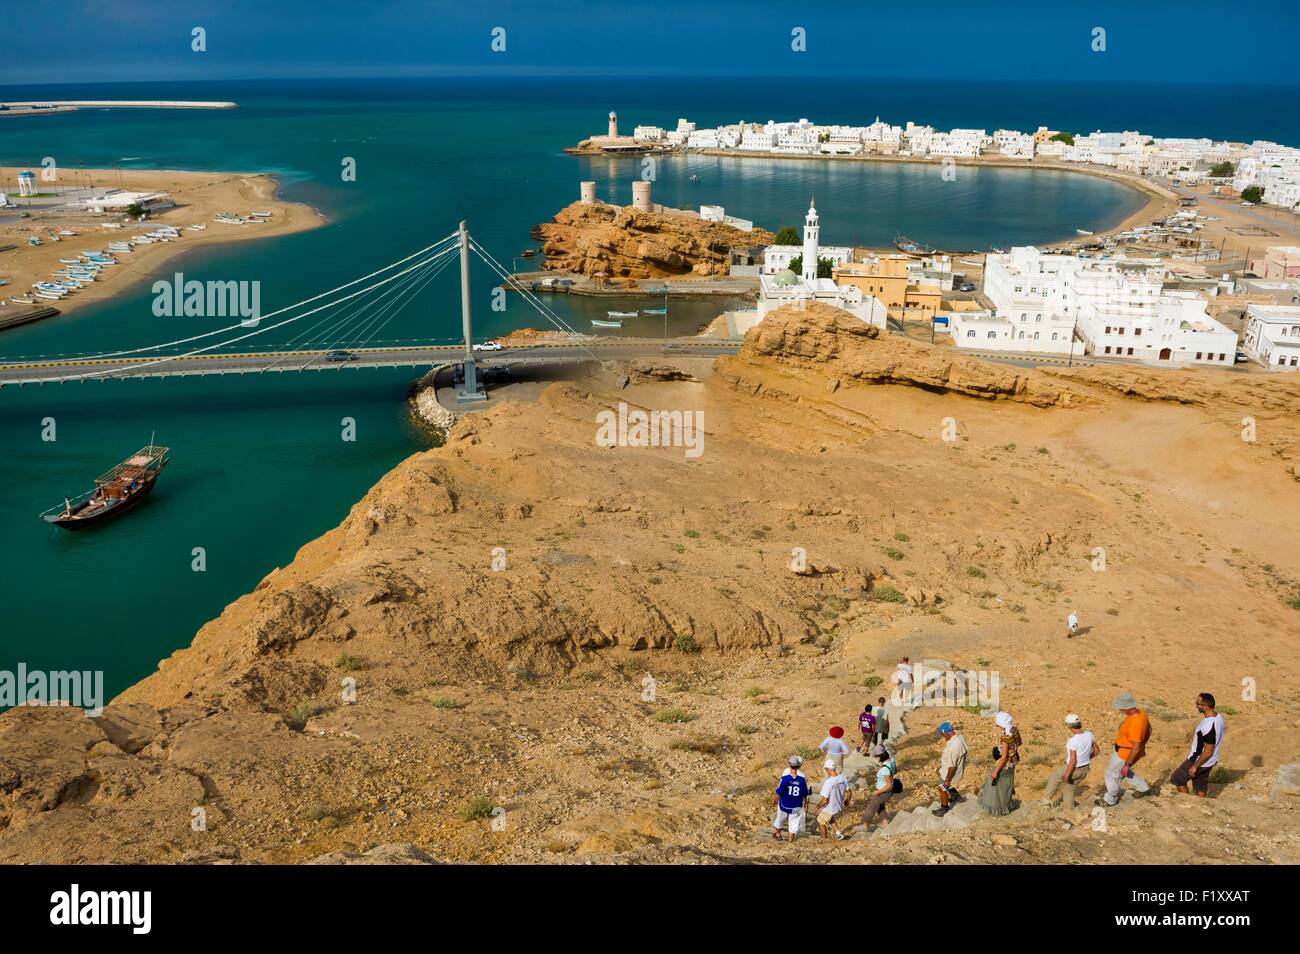 Oman, Sur, the historic city and the port - Stock Image